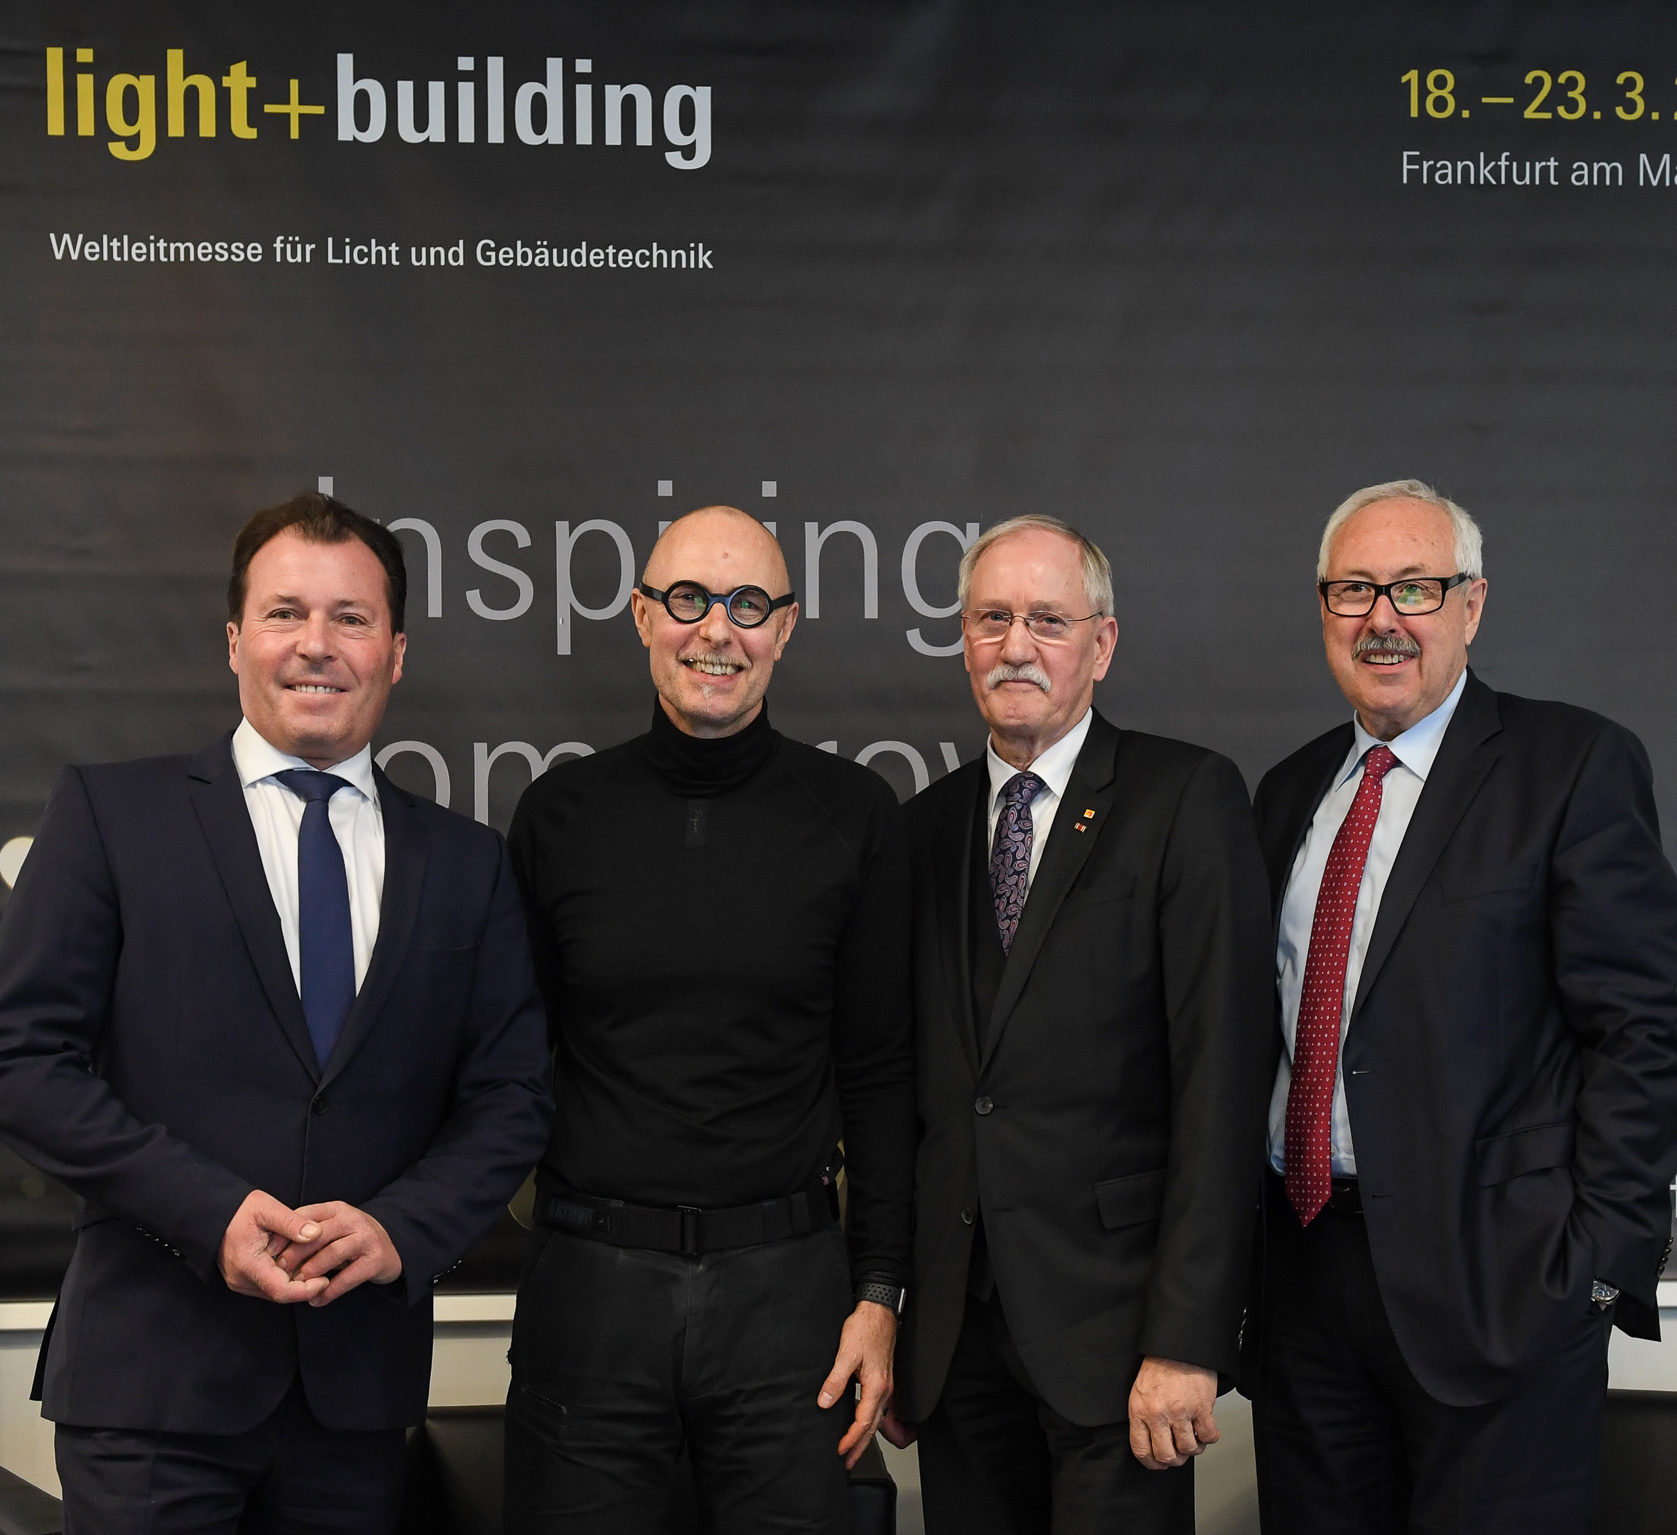 f.l.t.r.: Wolfgang Marzin (President and Chief Executive Officer (CEO) Messe Frankfurt GmbH), Prof. Wolfgang Henseler, Dipl.-Ing. Lothar Hellmann (President ZVEH), Michael Ziesemer (President of ZVEI) CMF, Room Illusion